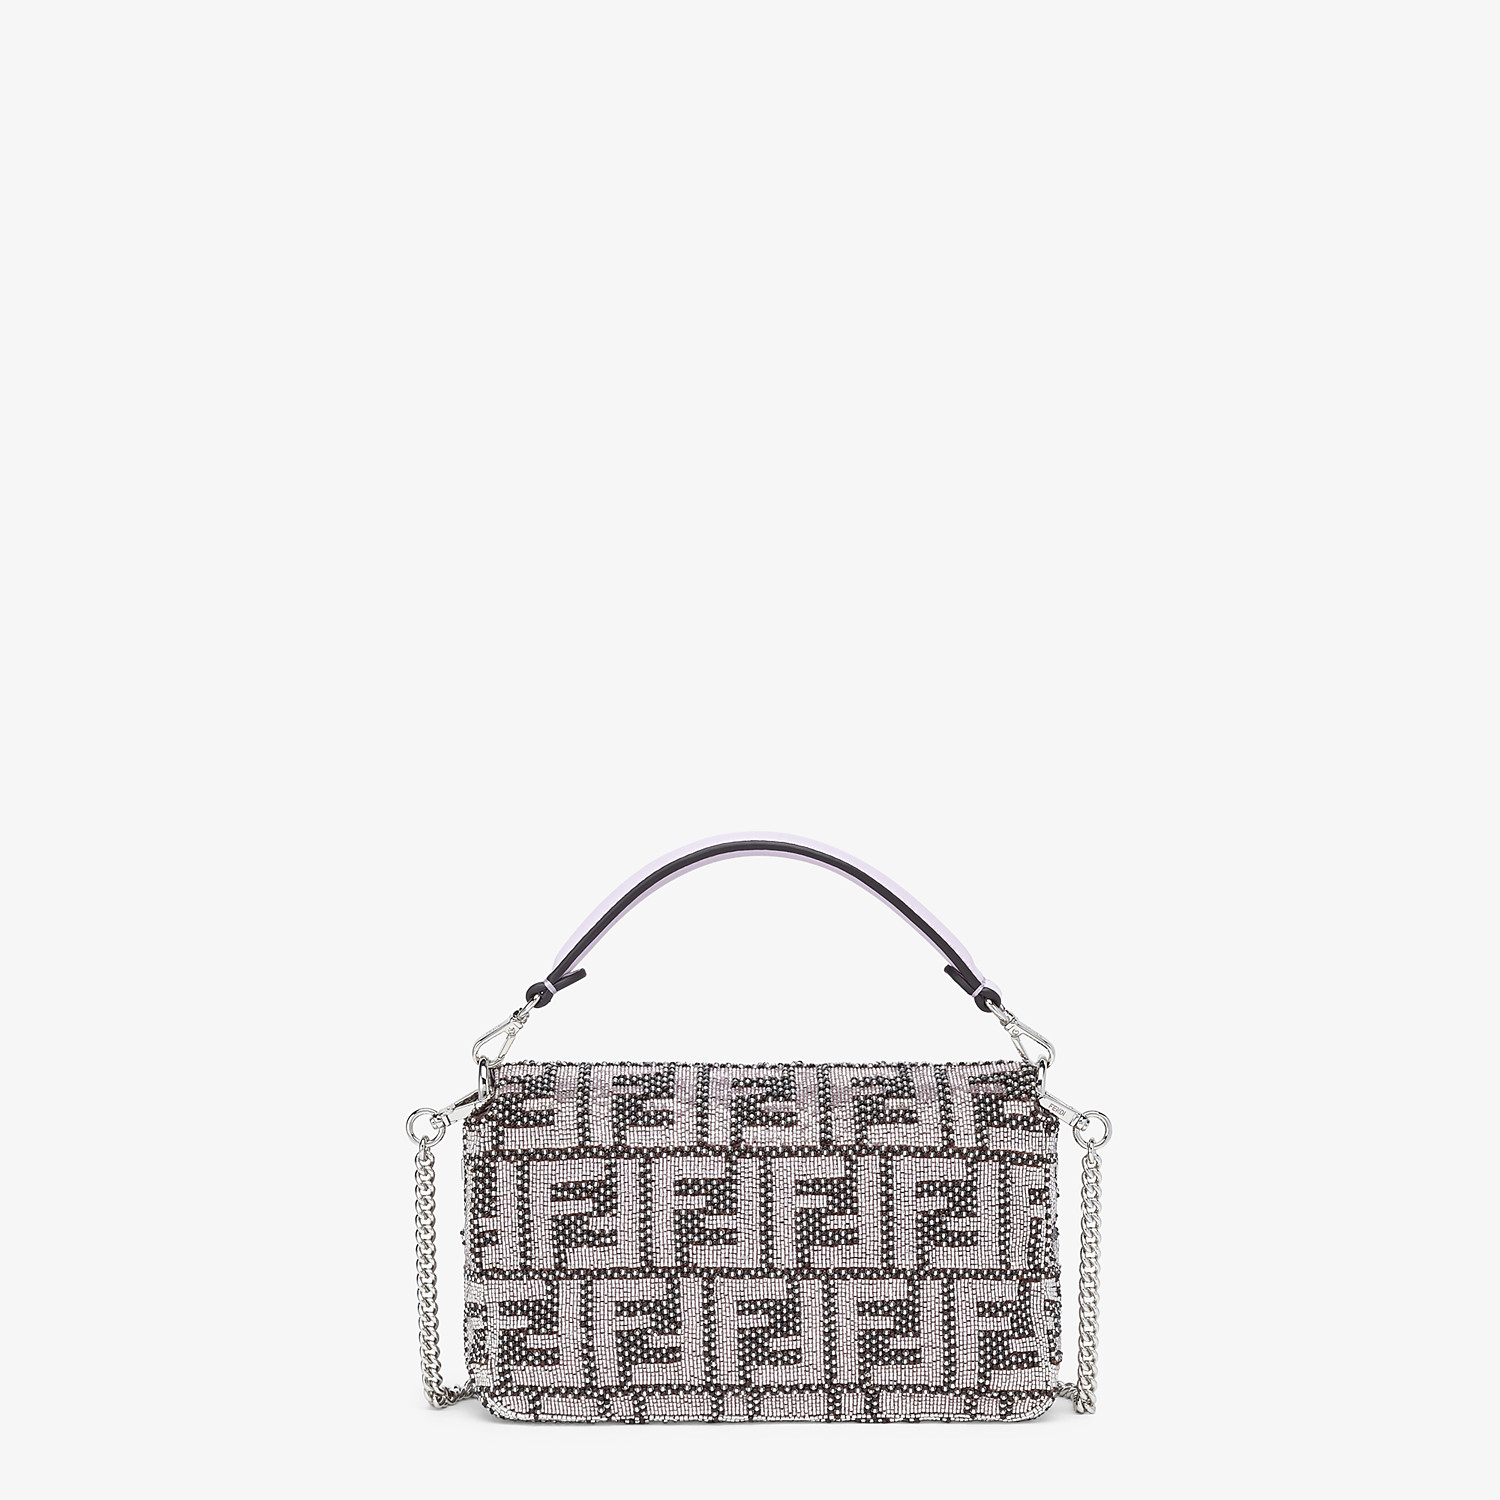 FENDI BAGUETTE - FF embroidery bag - view 3 detail